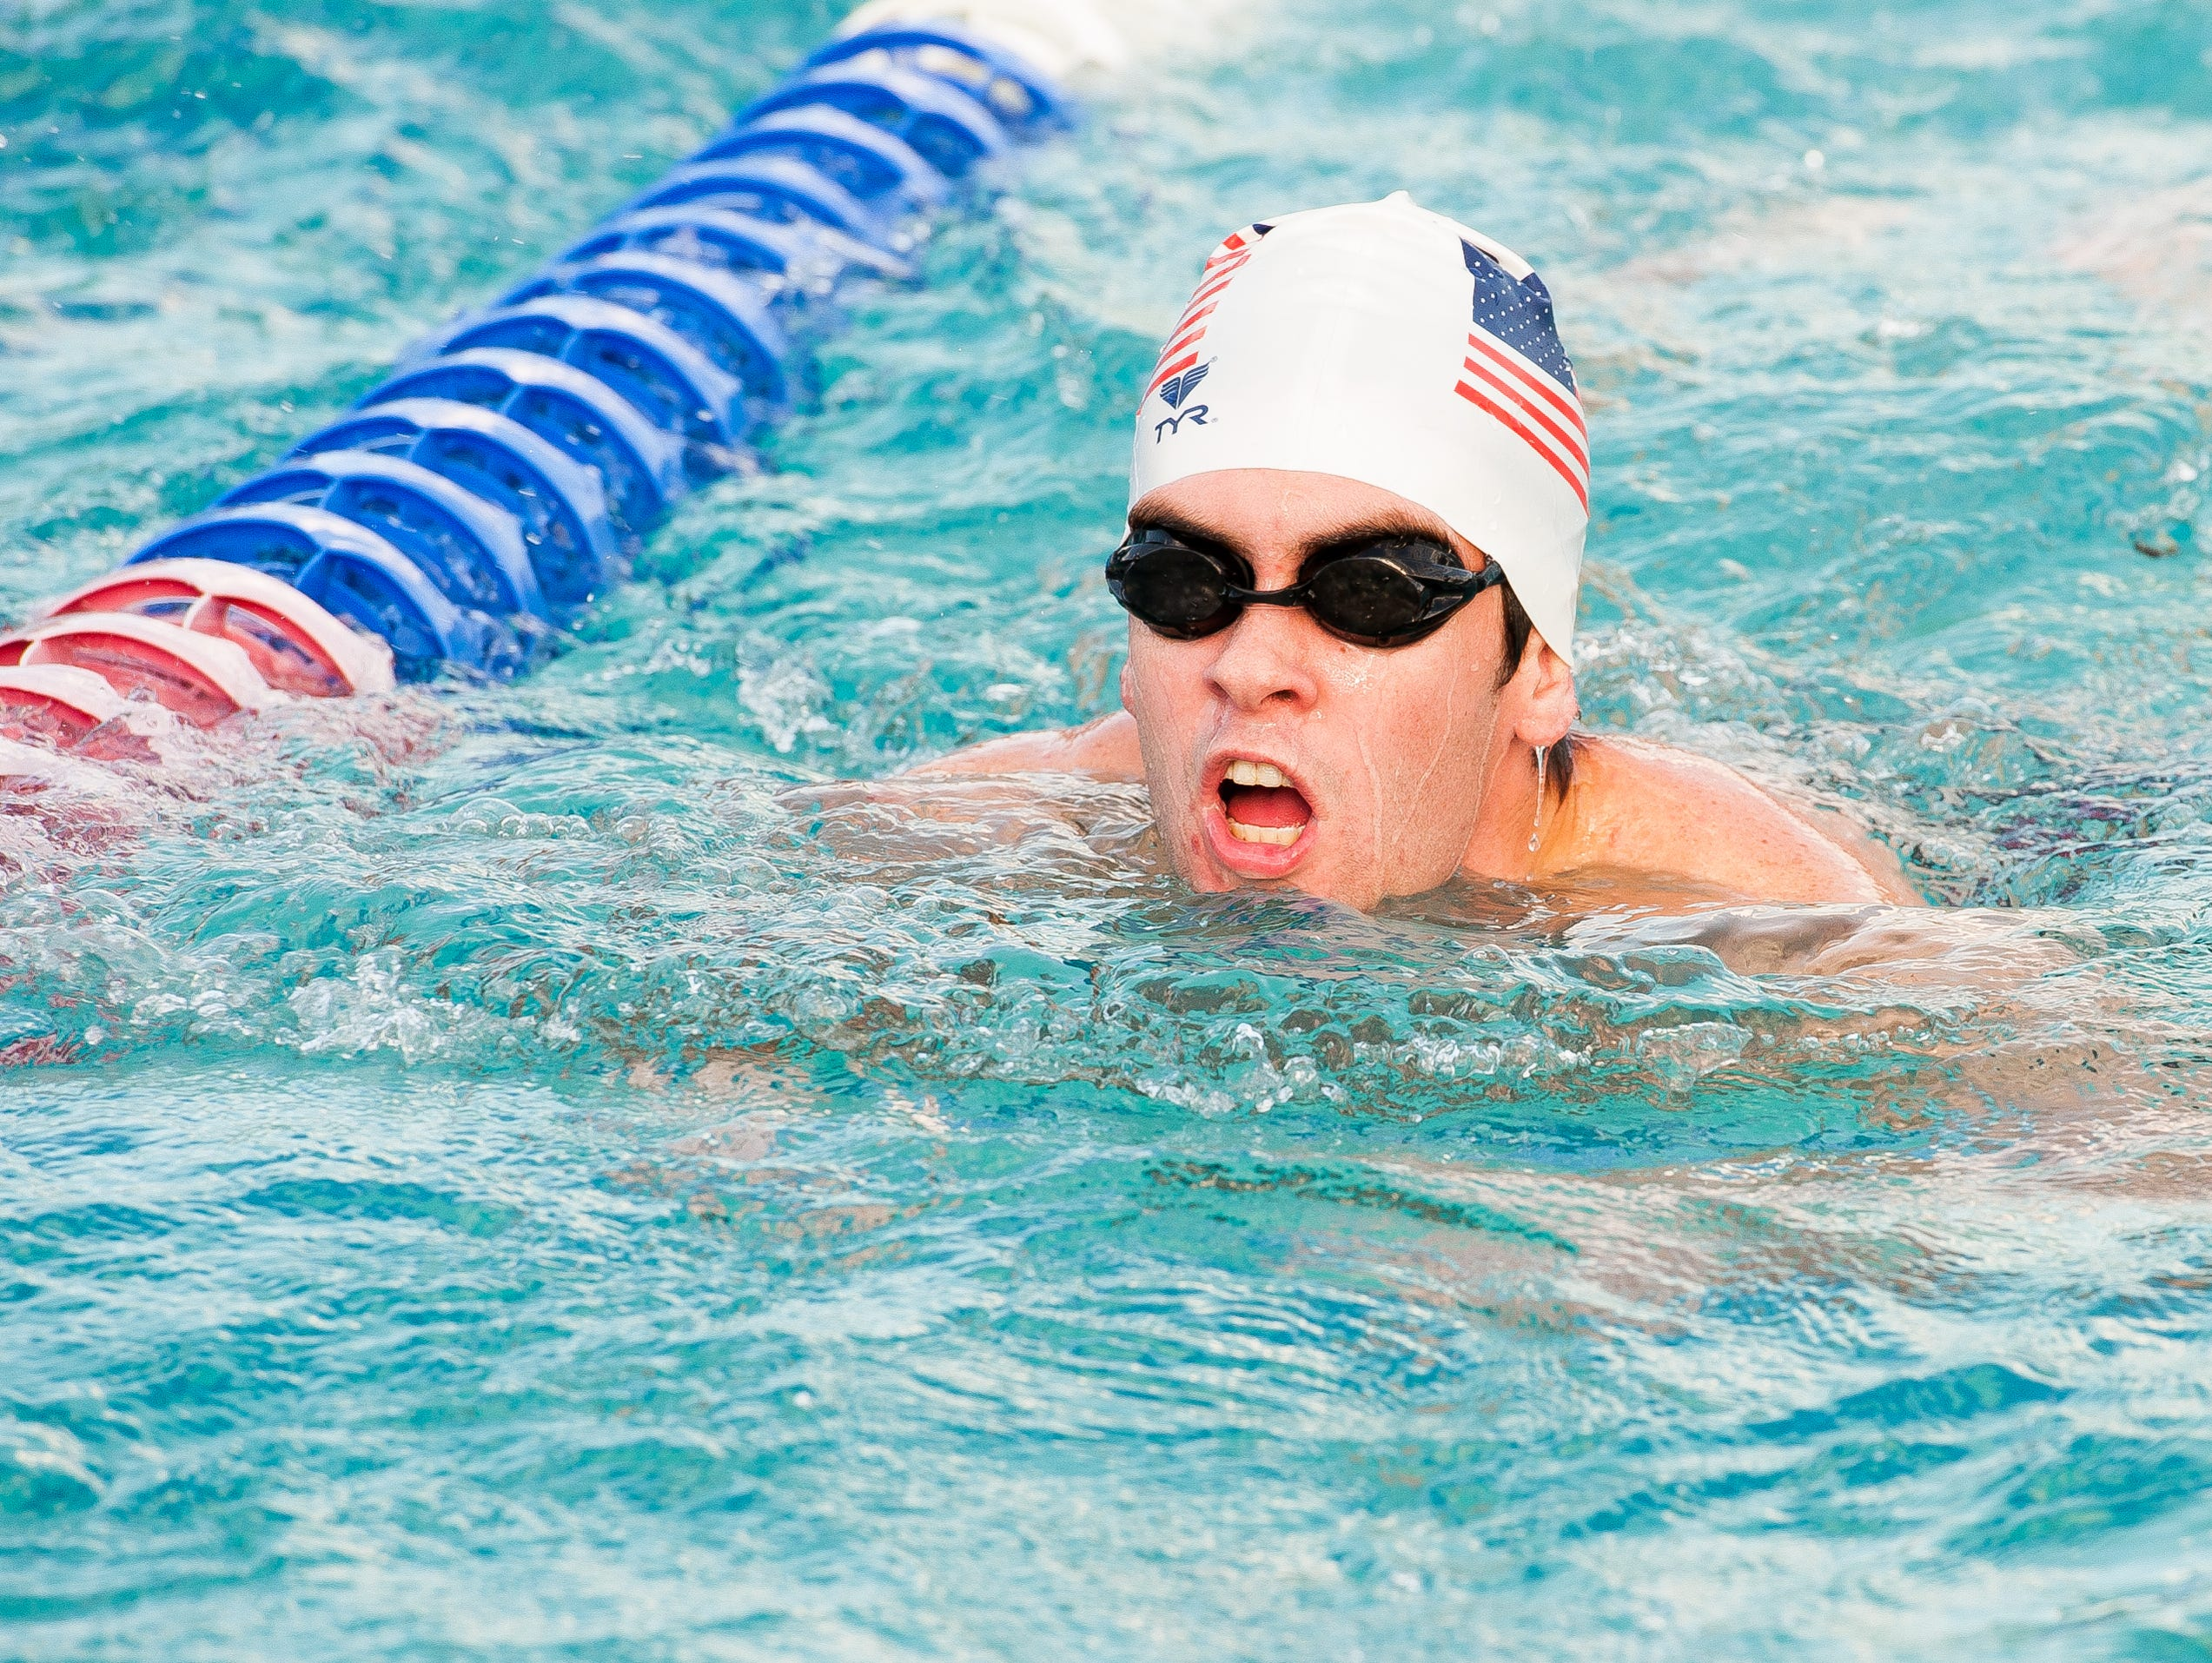 Senior Wyatt Leonard swims on Thursday, October 15, 2015 during Evangelical Christian School's swim practice held at the Fort Myers Aquatic Center in Fort Myers Fla. The team is undefeated heading into districts next week.